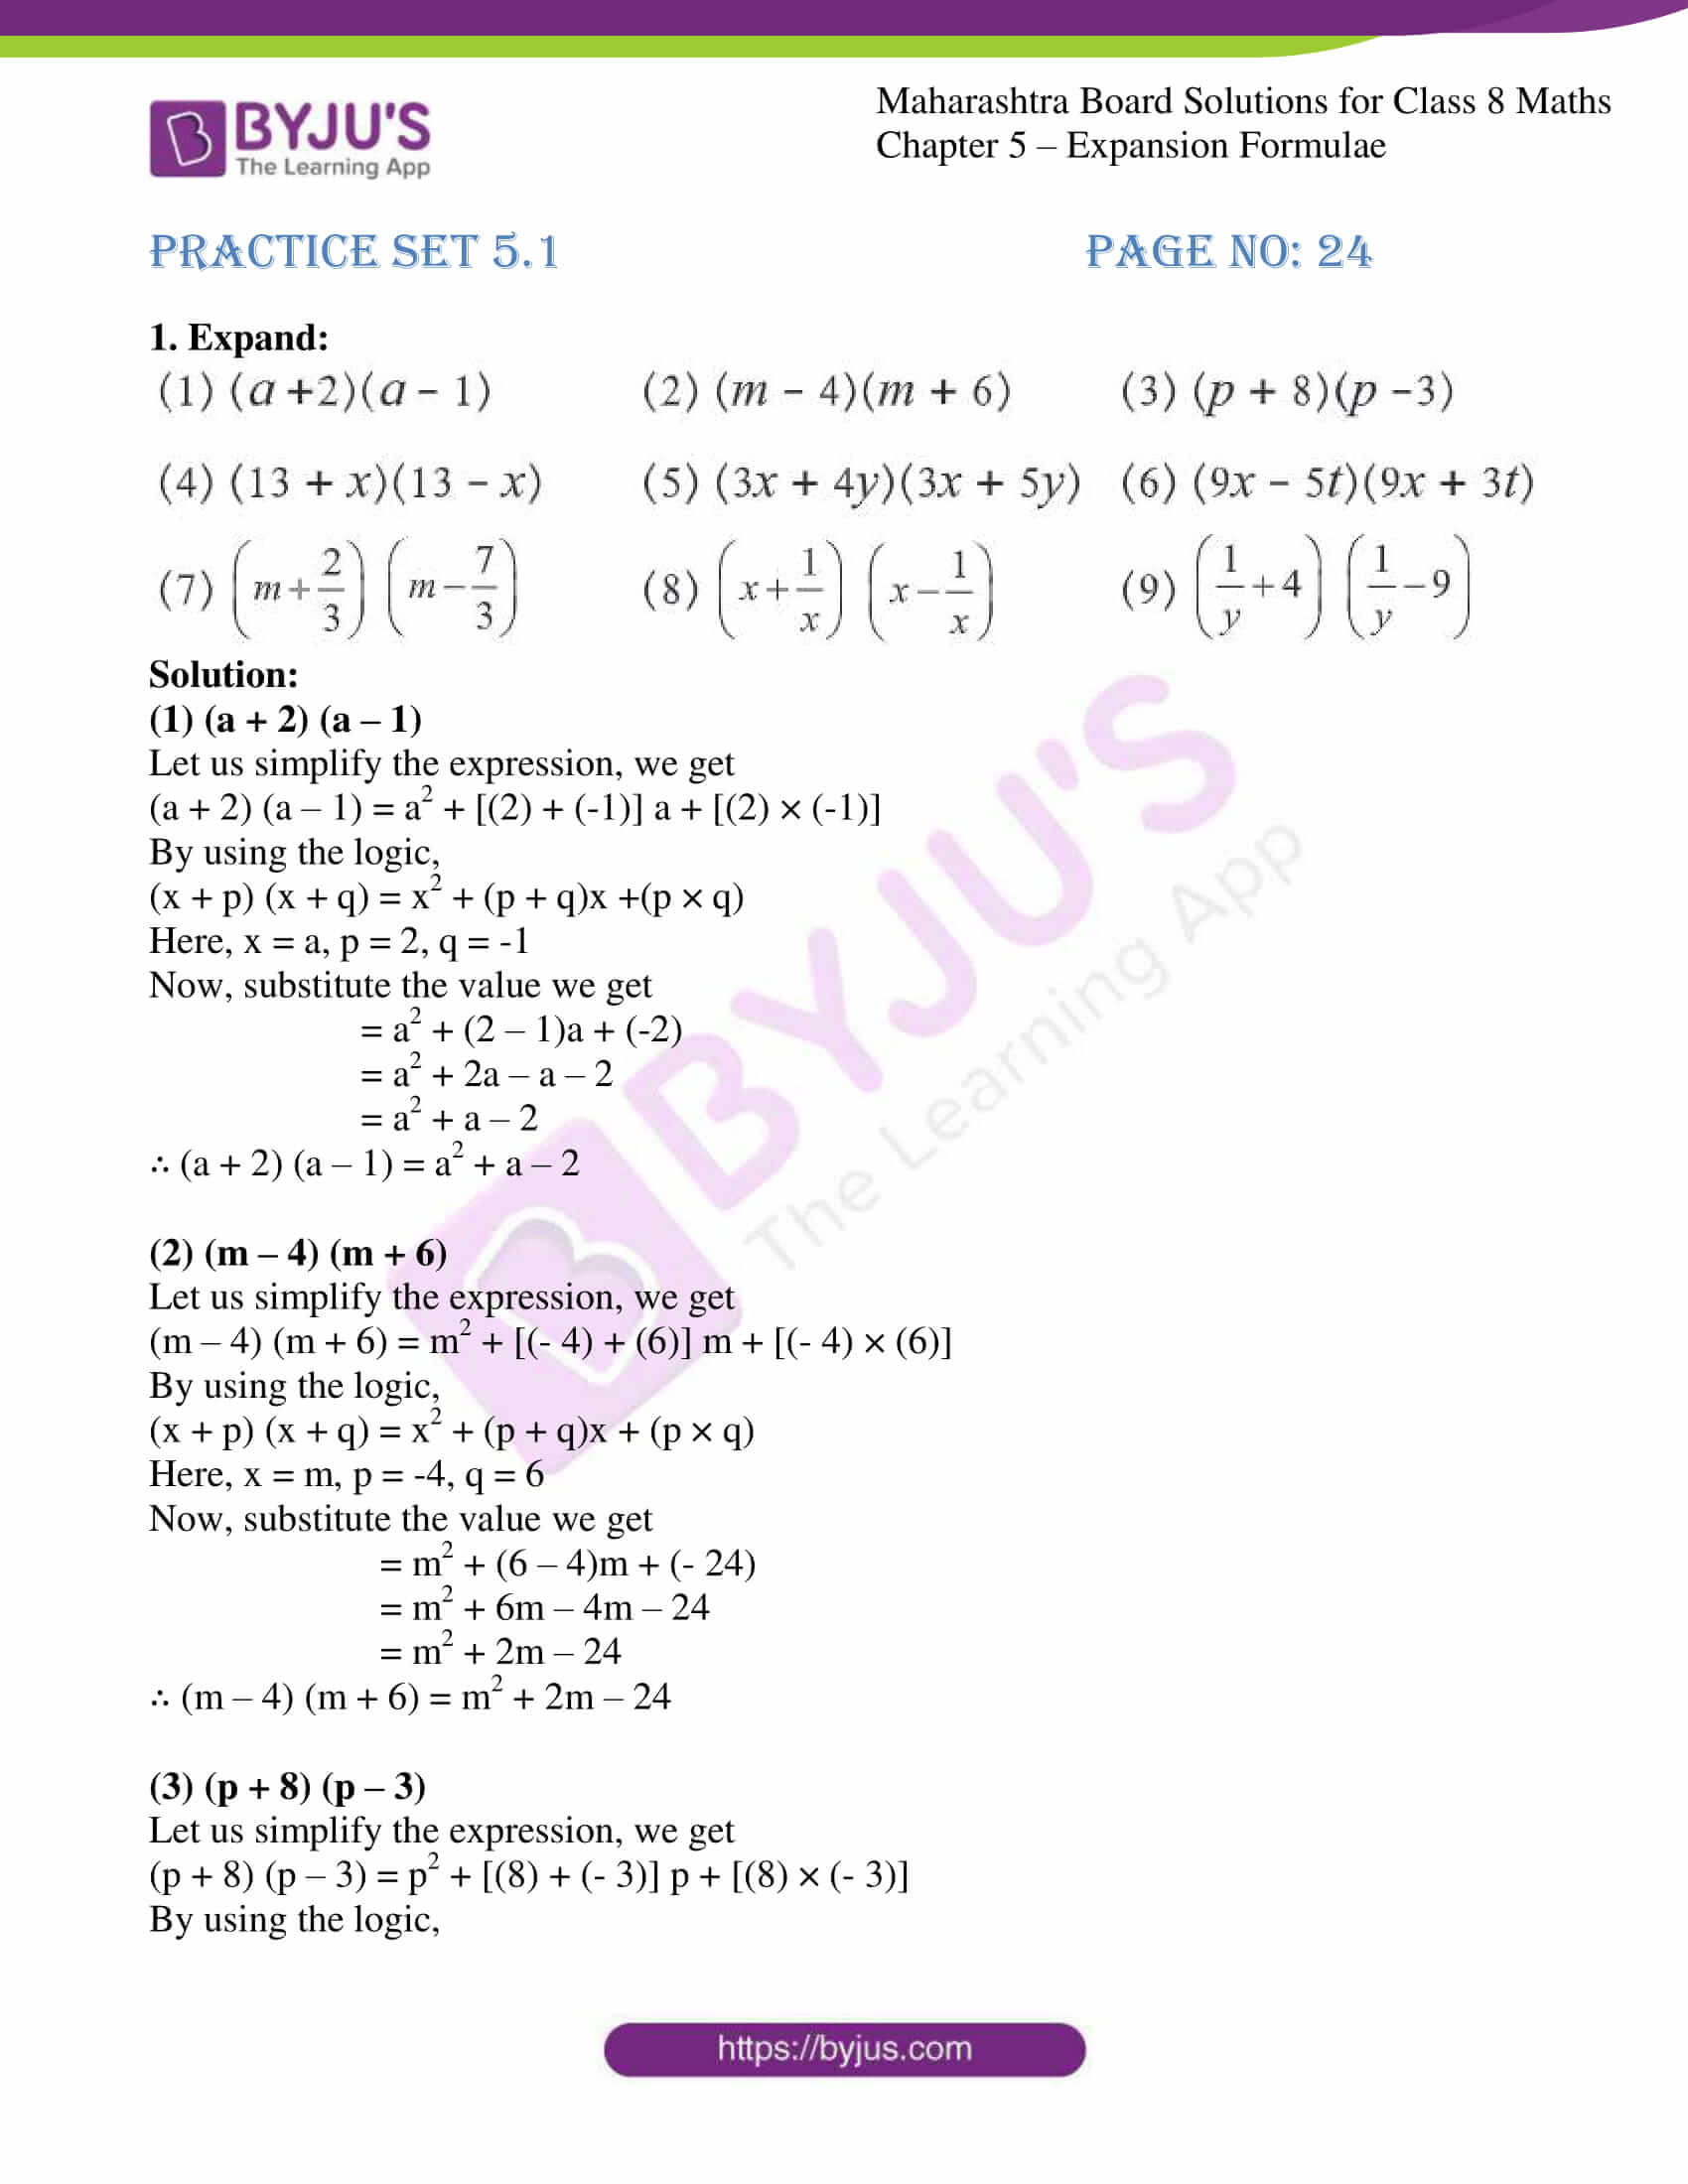 msbshse sol for class 8 maths chapter 5 01